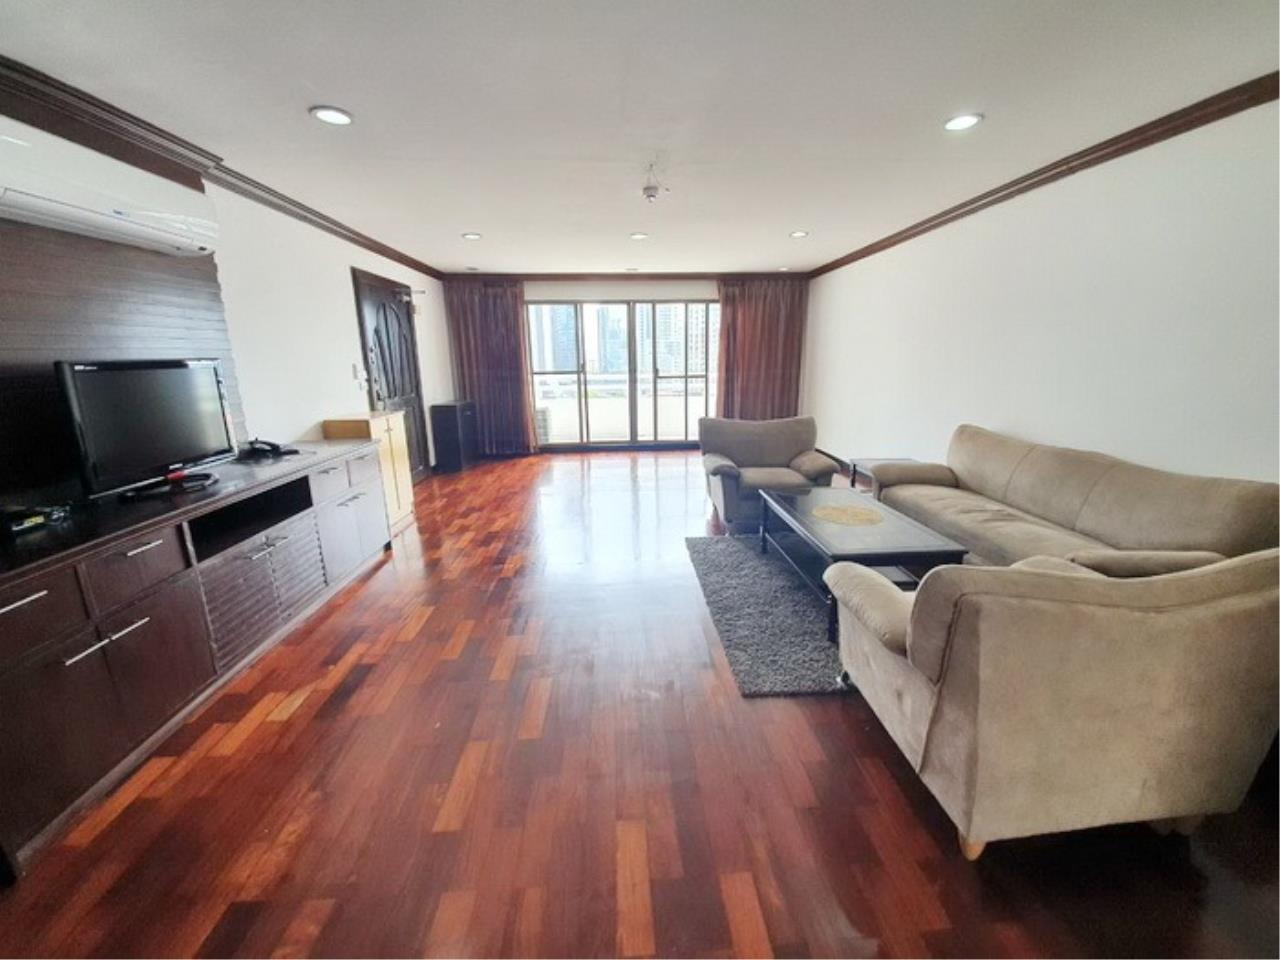 Bestbkkcondos Agency's regent on the park 1 - 250 Sq.M - for rent: 60000 THB - 3 bedrooms,3 bathrooms 1